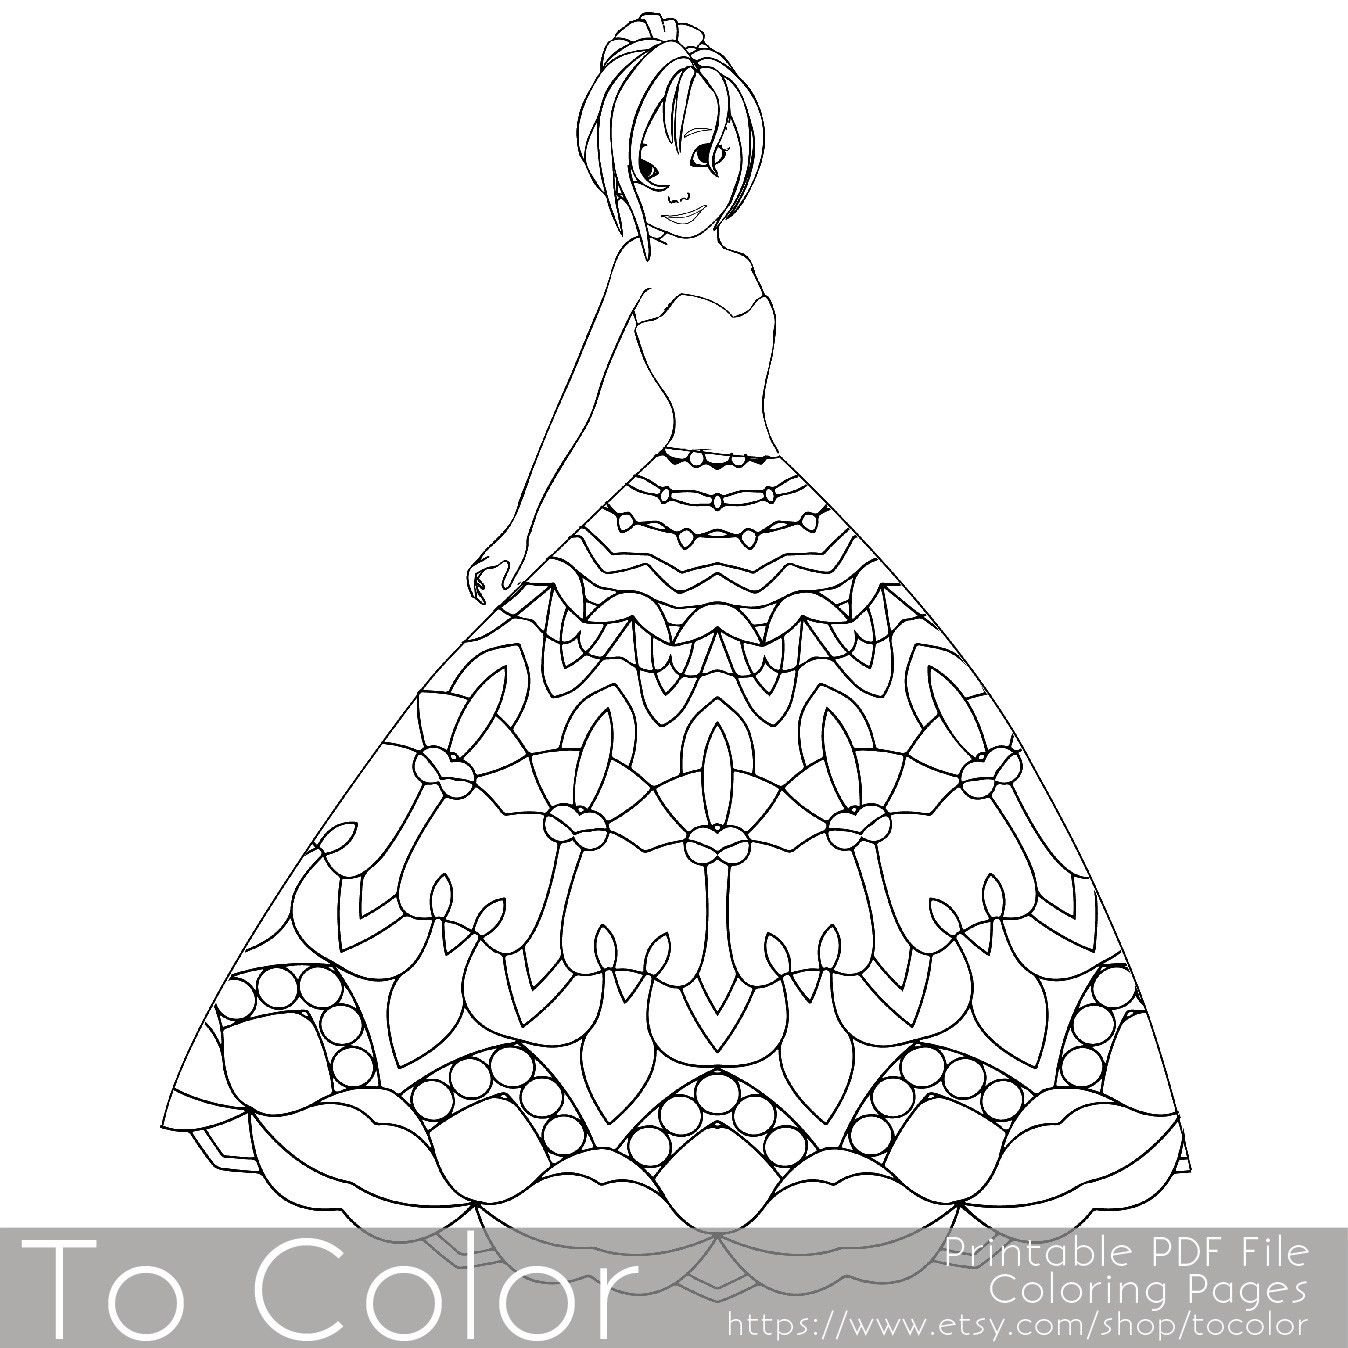 Printable coloring pages grown ups - This Printable Coloring Page For Grownups Features A Princess Wearing A Pretty Dress With A Mandala